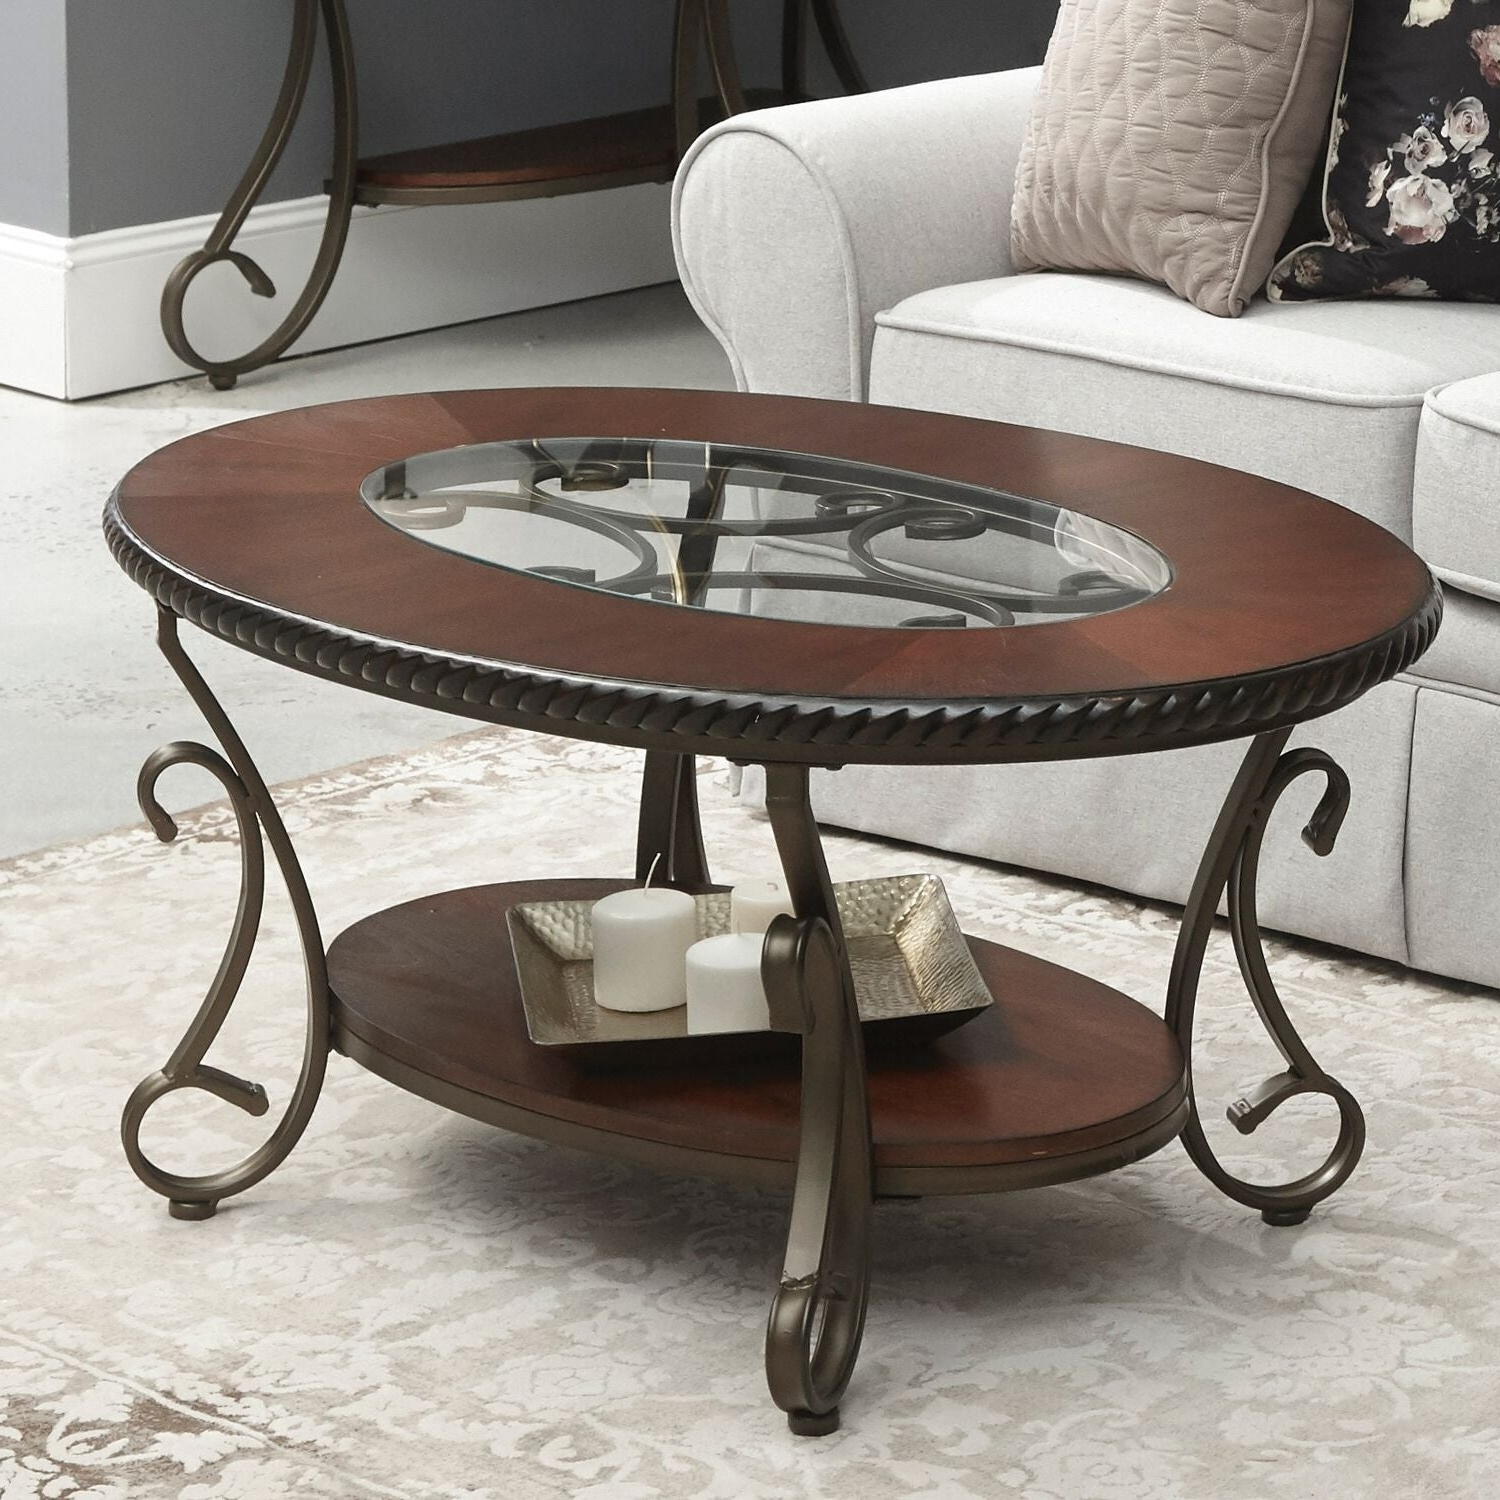 Most Recent Evalline Modern Dark Walnut Coffee Tables For Home Source Cragin Coffee Table With Glass Inset – Dark Finish – 45.3 In  Wide X 29.5 In Deep X  (View 12 of 20)